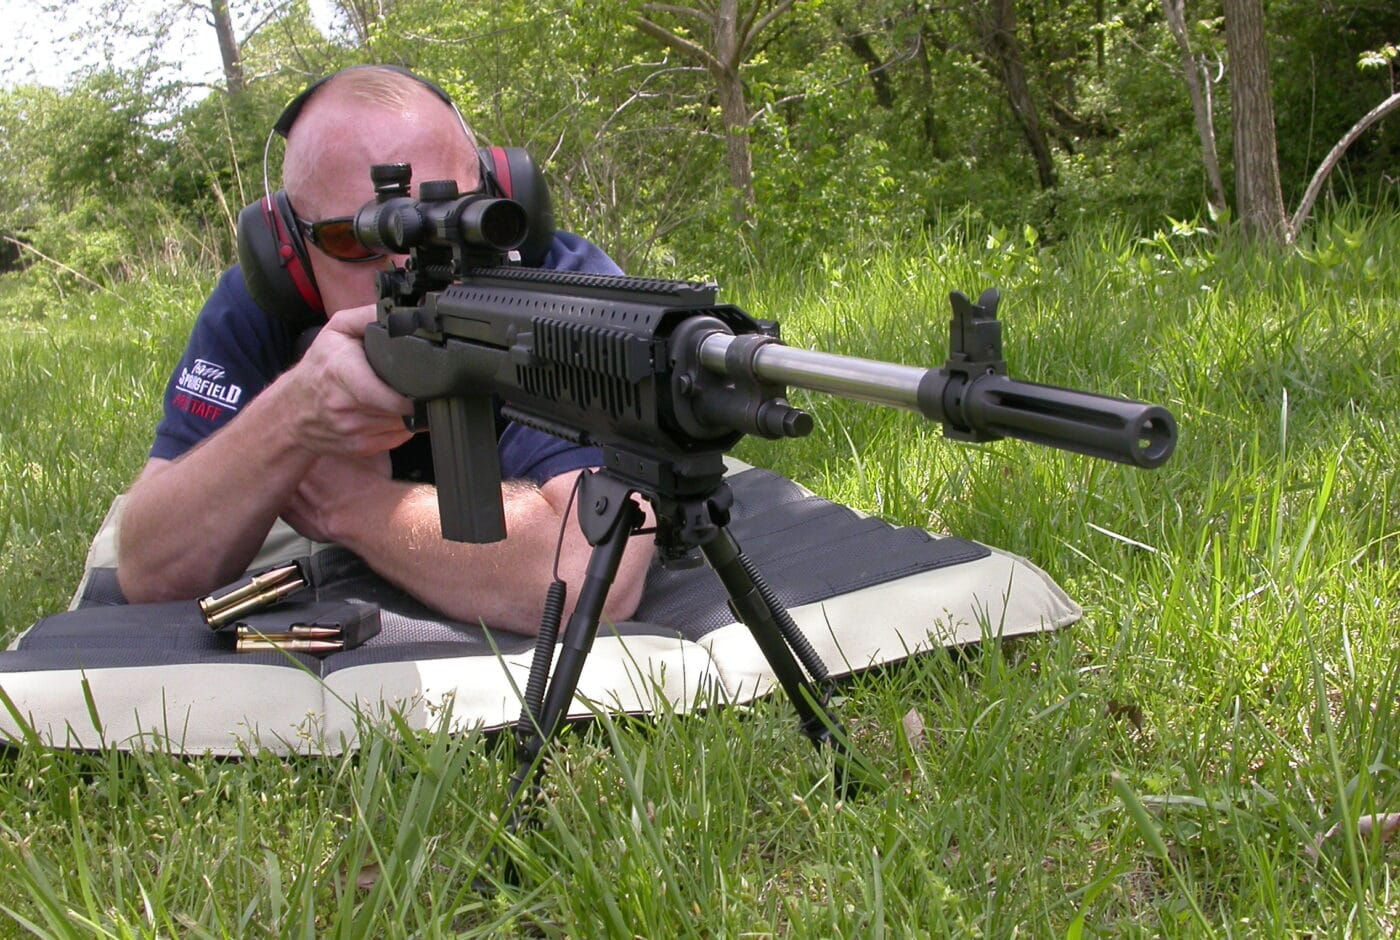 Man shooting a rifle from a prone position with bipod